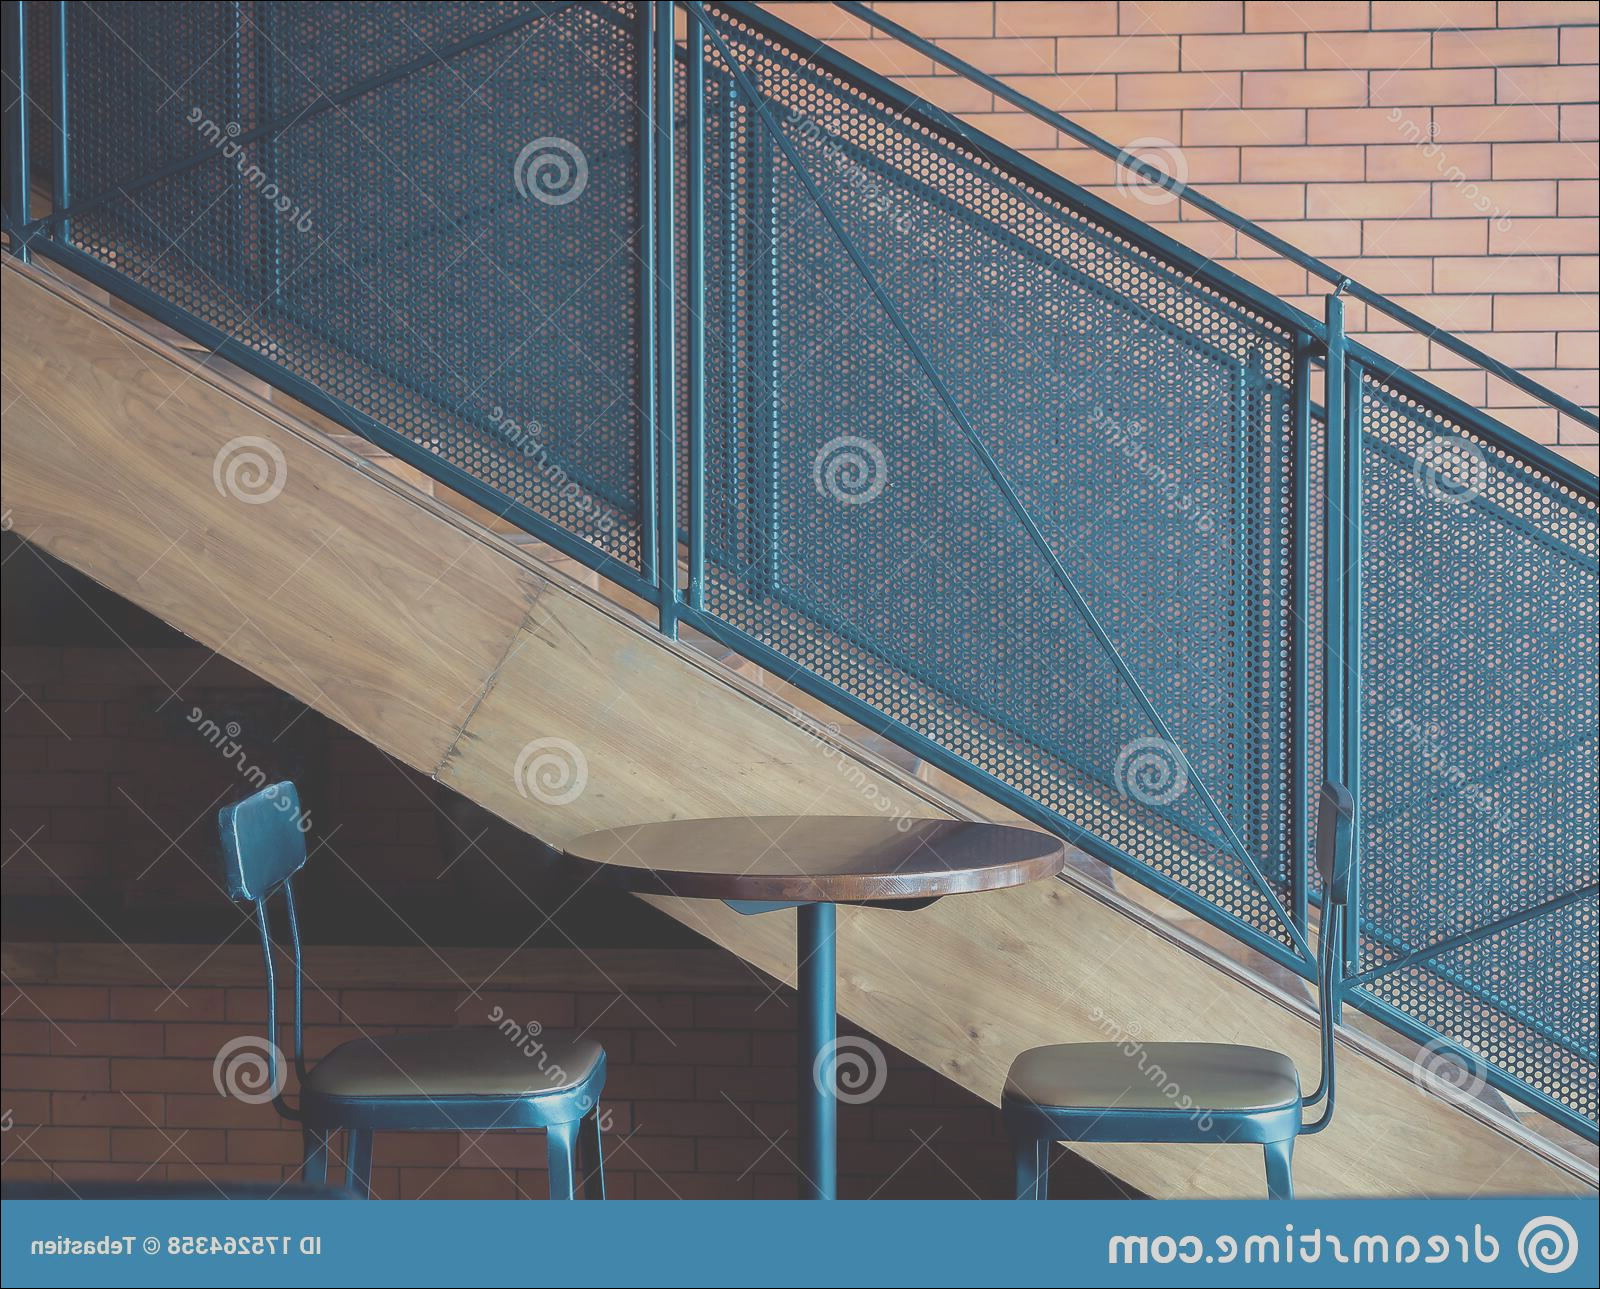 cafe decoration design round wooden table two modern bar stools near metal stairs brick wall background empty image